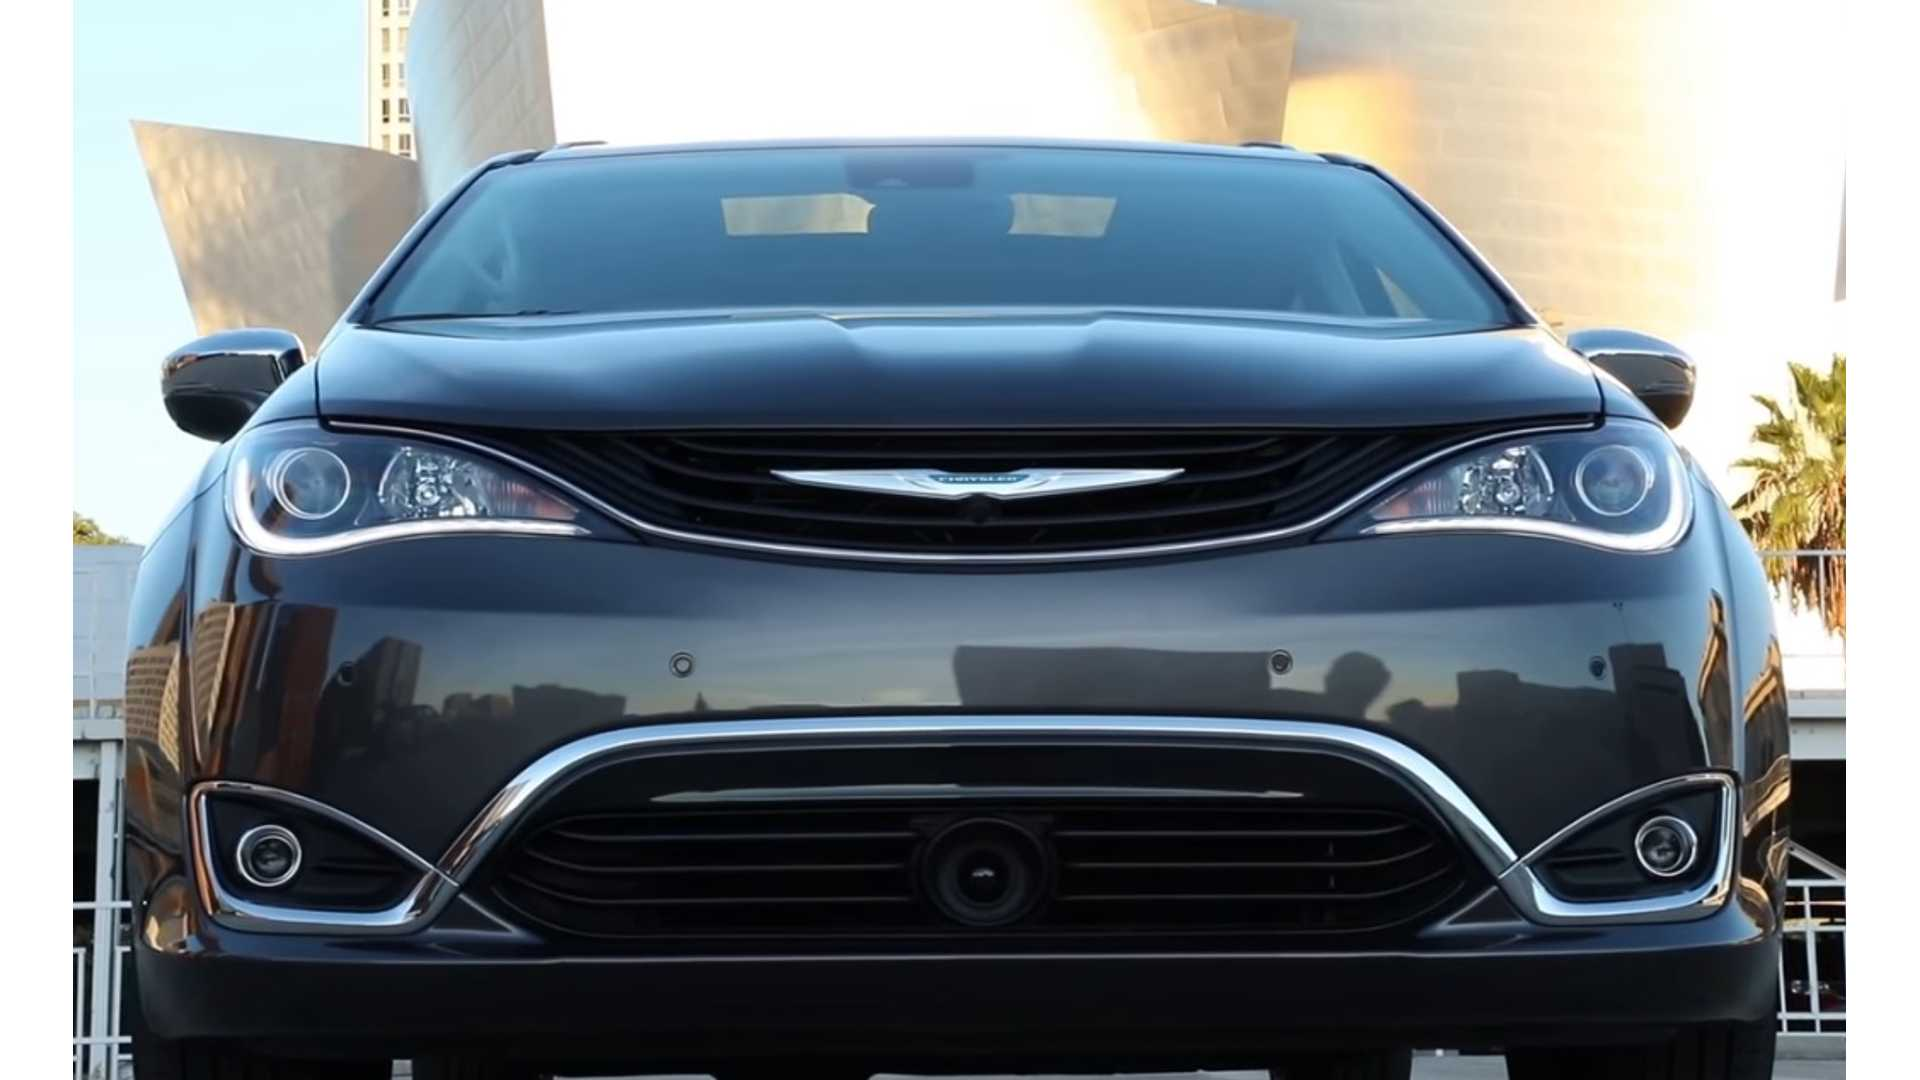 Chrysler Pacifica Hybrid Impressive 32 Mpg With 36 Miles Electric City Range